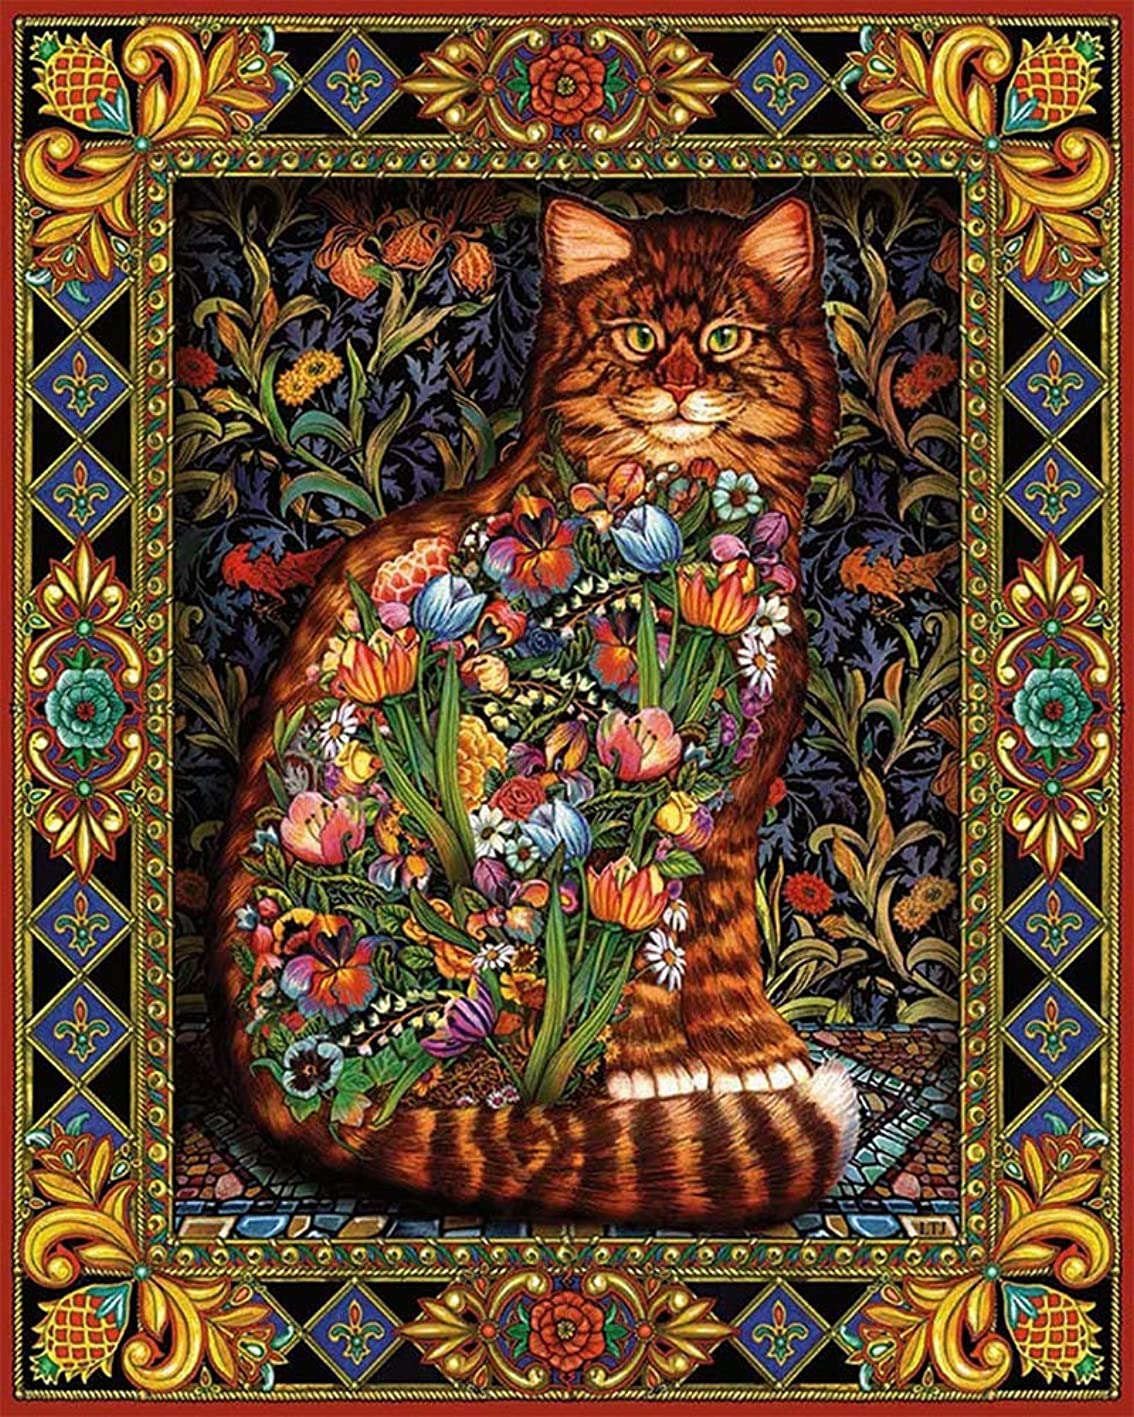 Orsit DIY 5D Diamond Painting Kit,Jigsaw Puzzle,Full Diamond Embroidery Cross Stitch Arts Craft Supply for Home Wall Decor,Cat(12X16inch/30X40CM) qllpxporkhh986